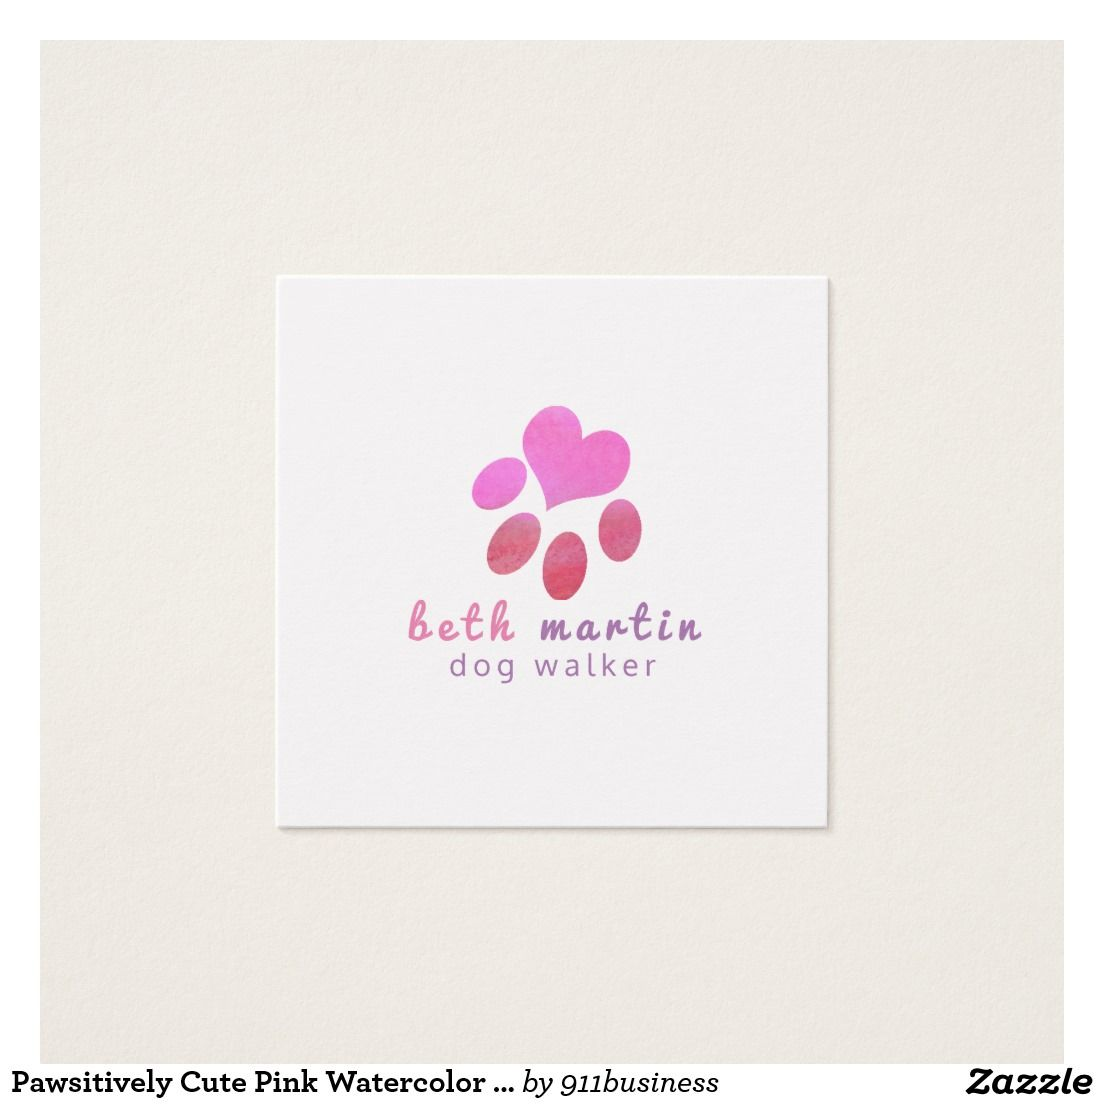 Cute Pet Sitter Business Cards | Pet sitting business, Text layout ...